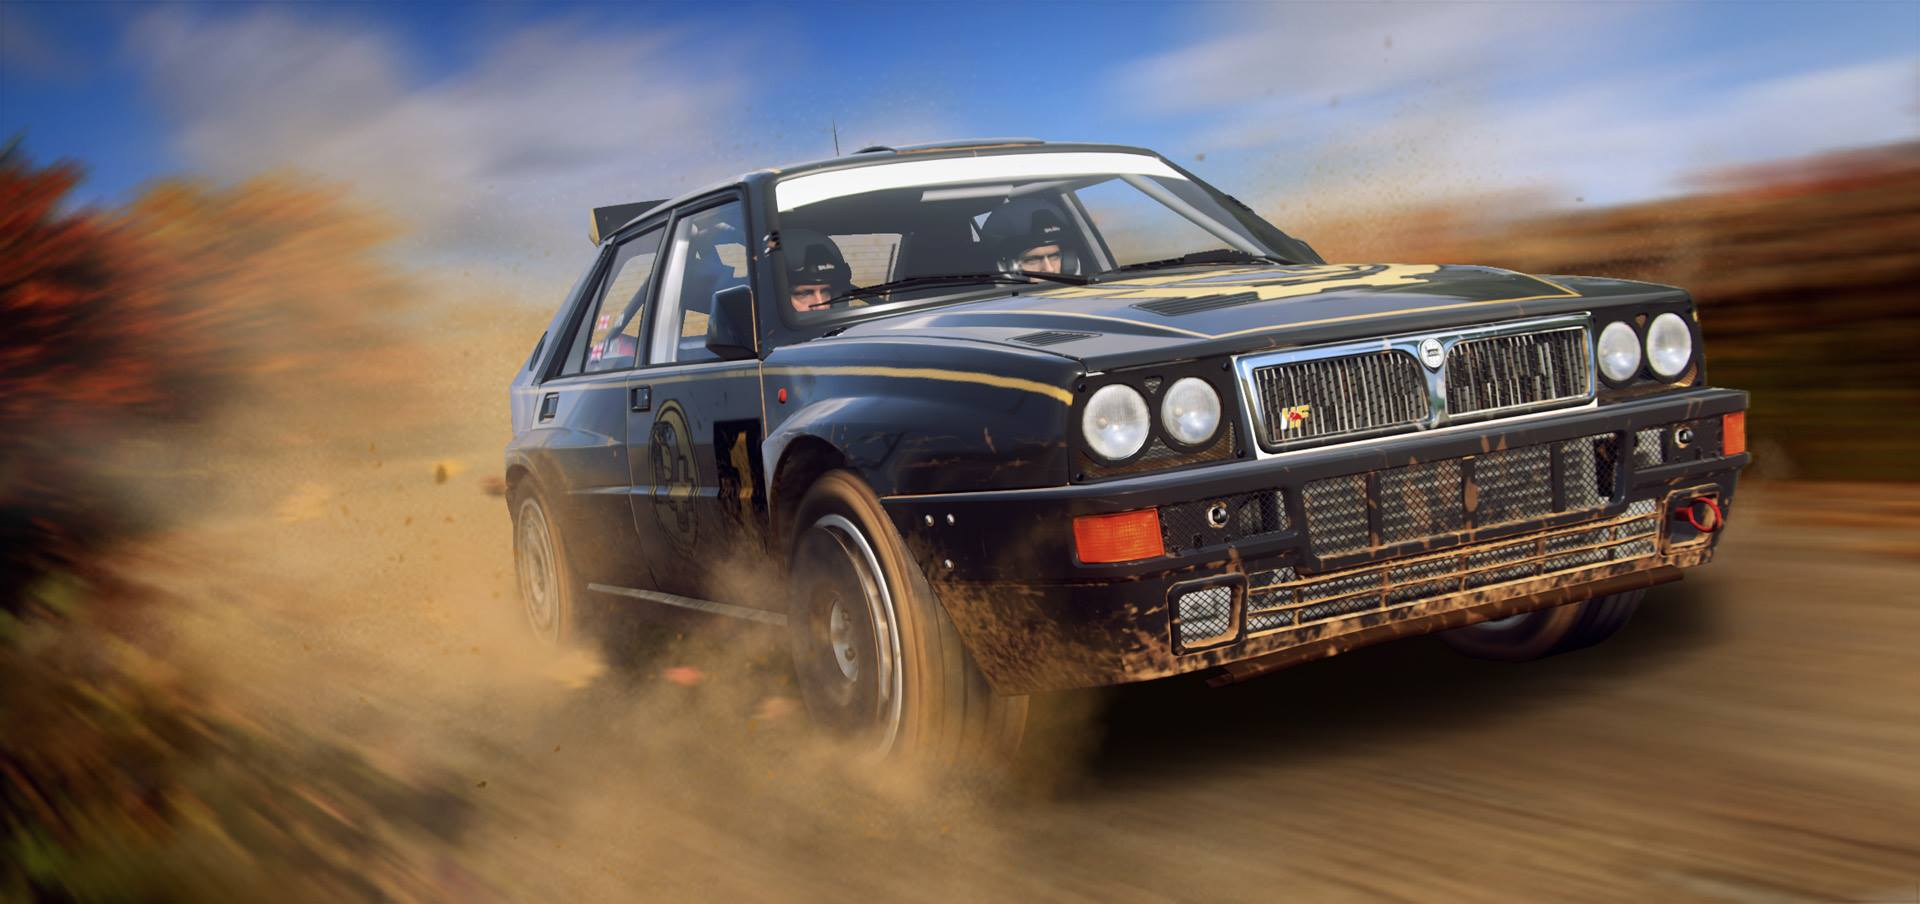 DIRT RALLY 2.0: YOU MIGHT WANT TO ADD MUD FLAPS TO YOUR TELEVISION!